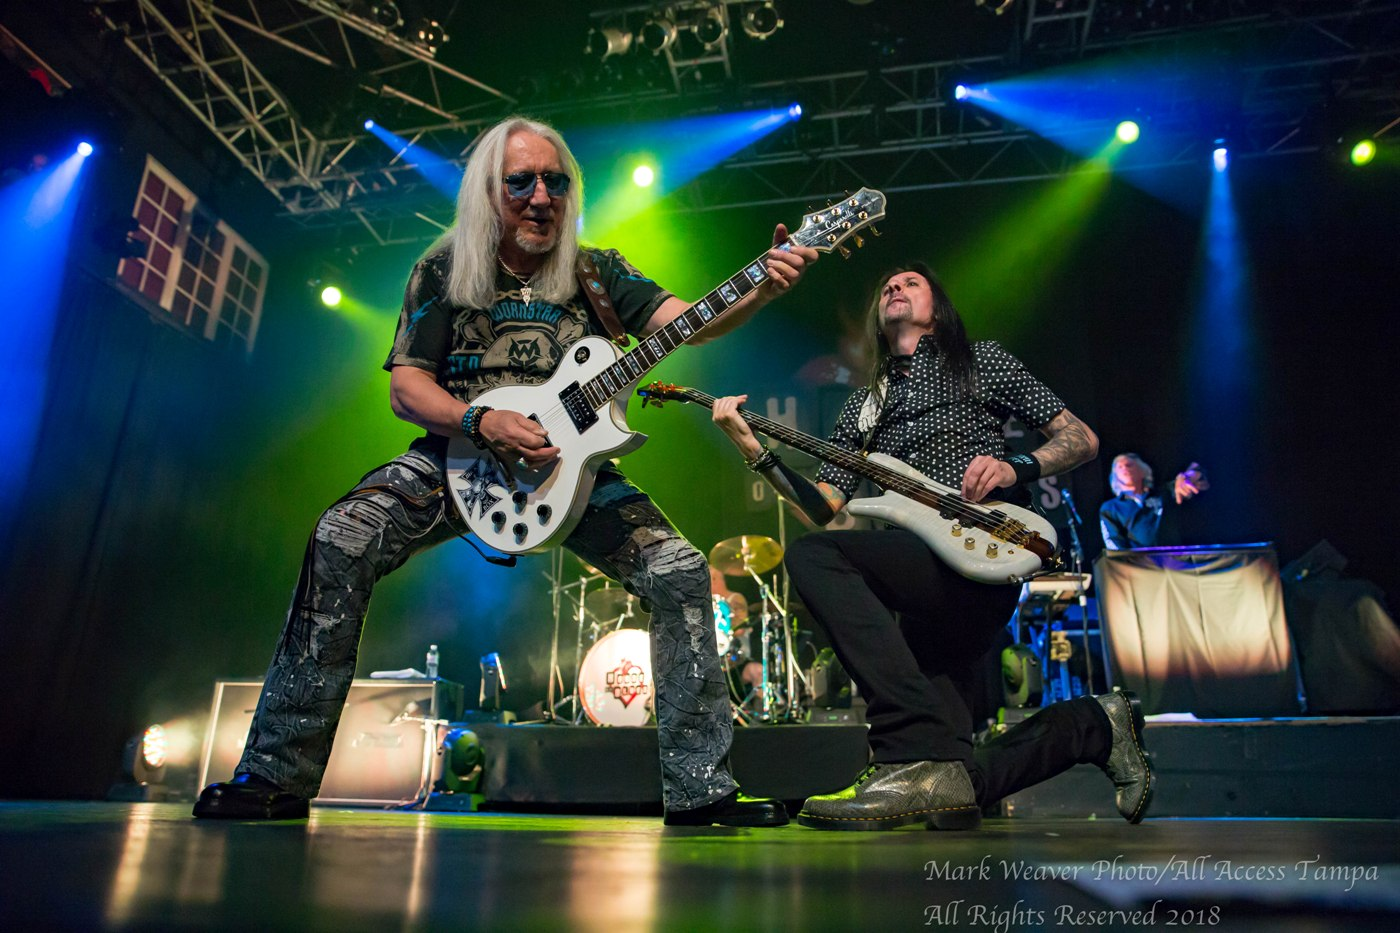 THE CLASSIC ROCK MUSIC REPORTER: MICK BOX OF URIAH HEEP FROM